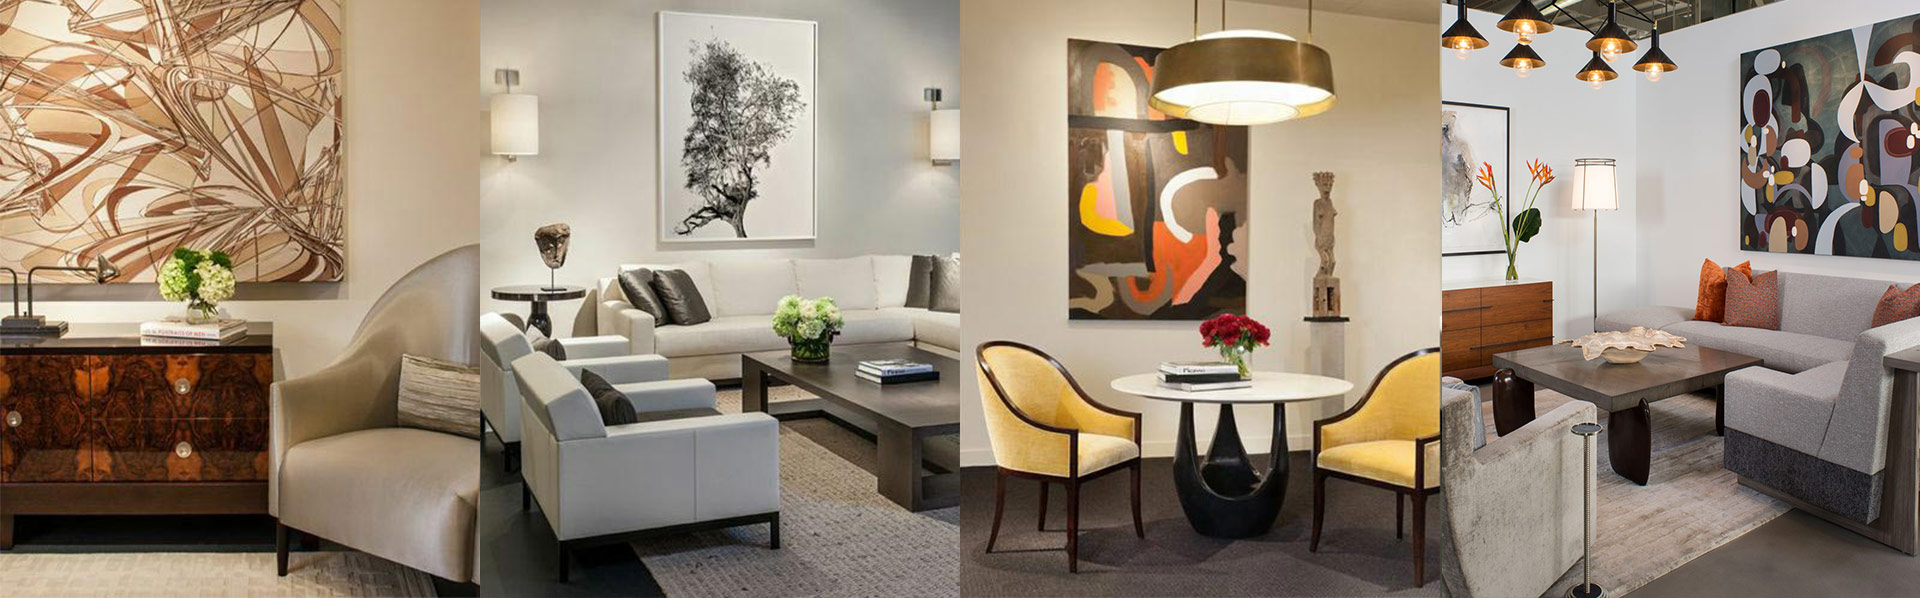 How To Shop Your Local Design Center Showroomsla Design Concepts